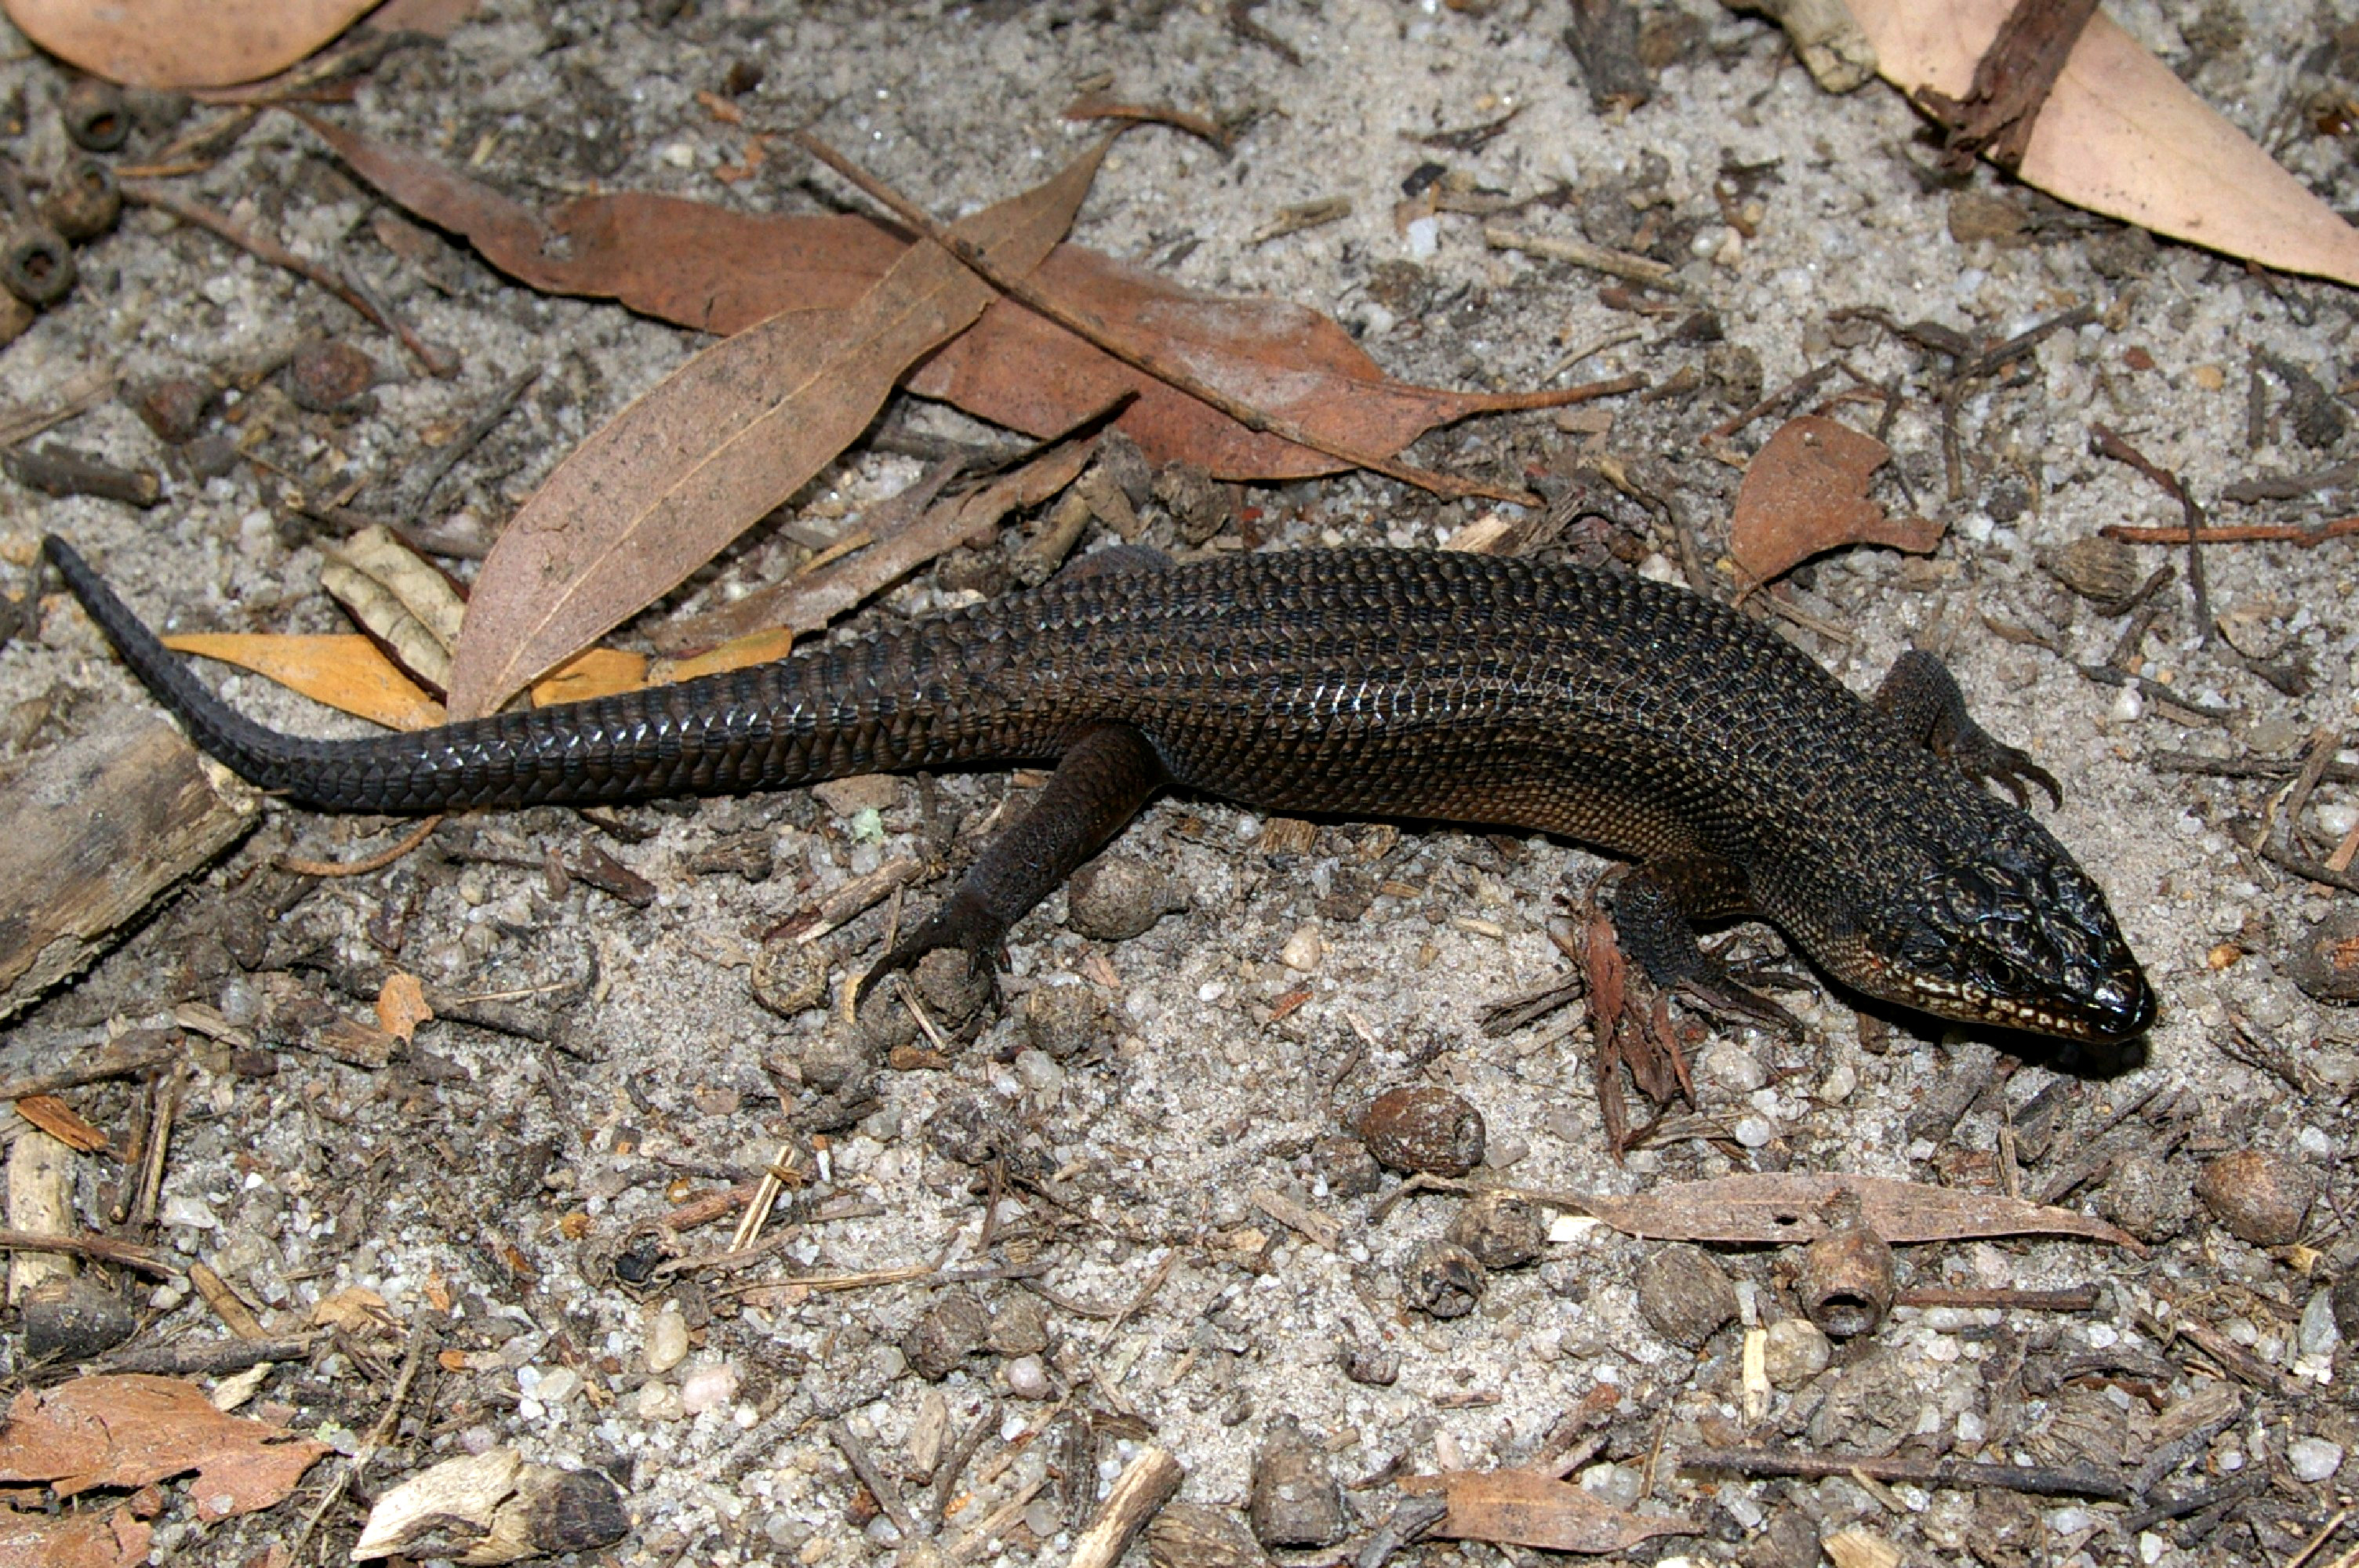 Gippsland: The Skink's Domain